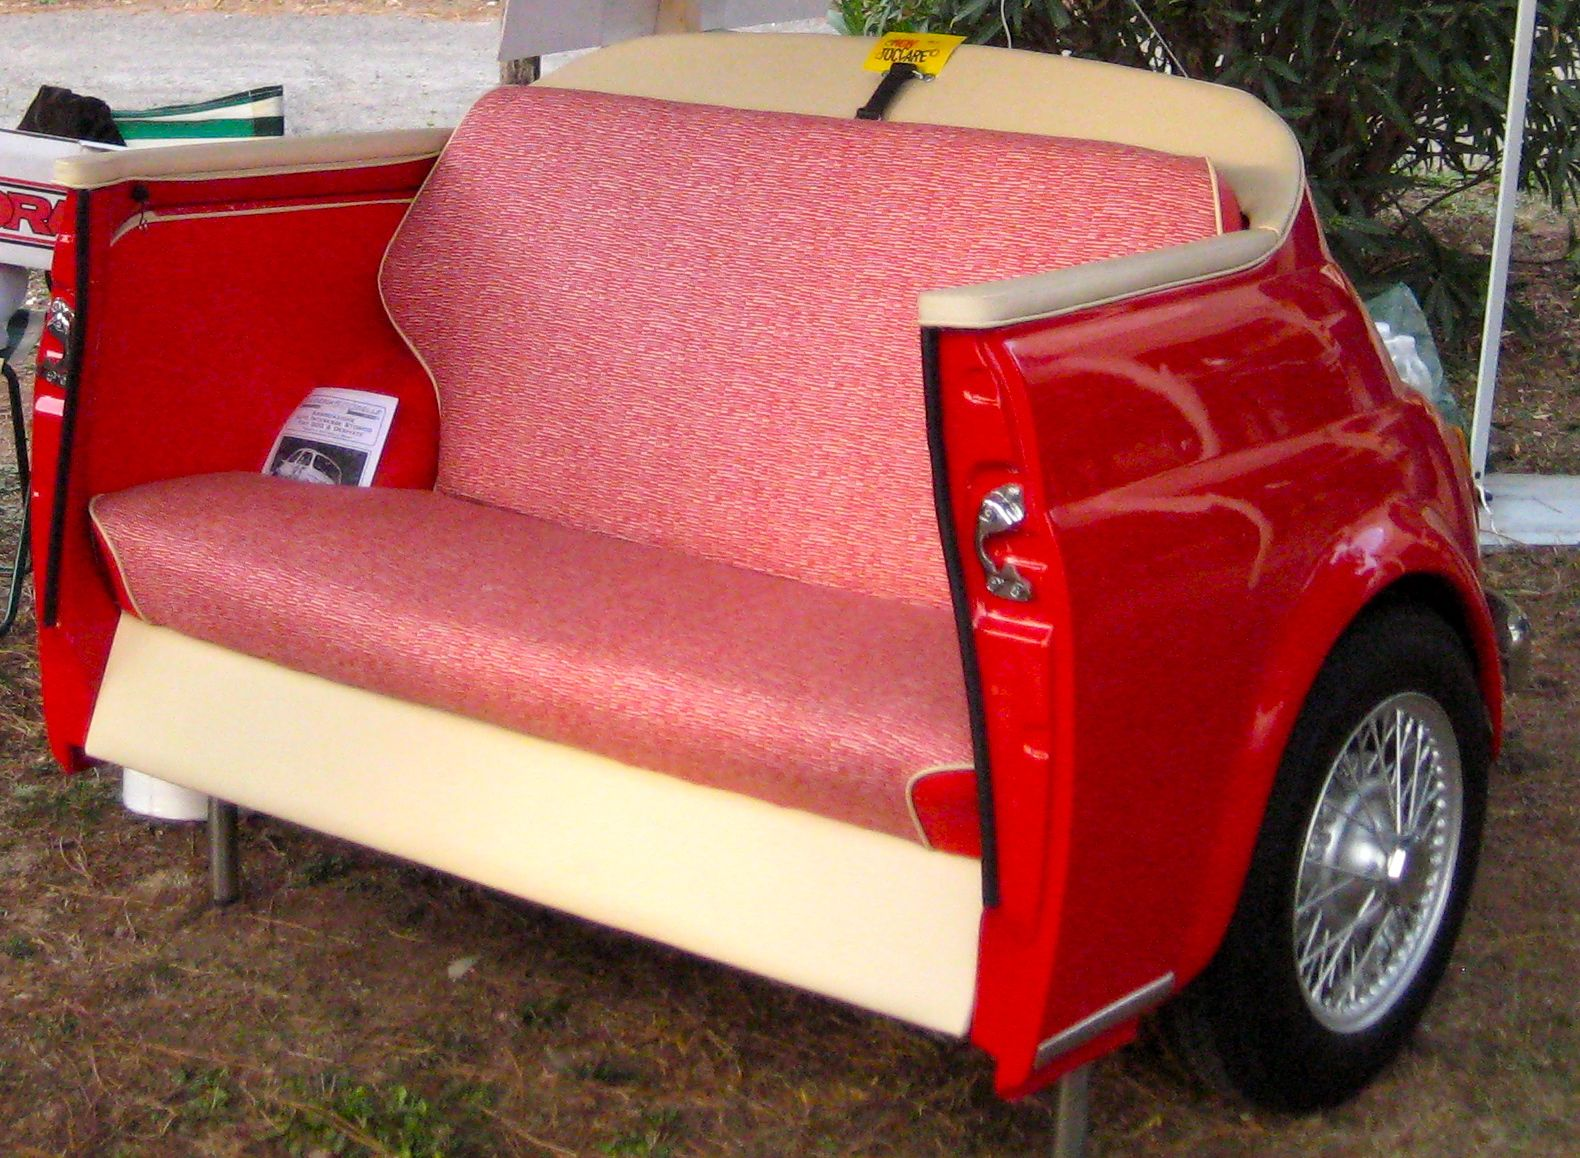 Have a seat #repurposed #recycle #furniture #cars #auto #teamnissan #manchester #newhampshire #nh